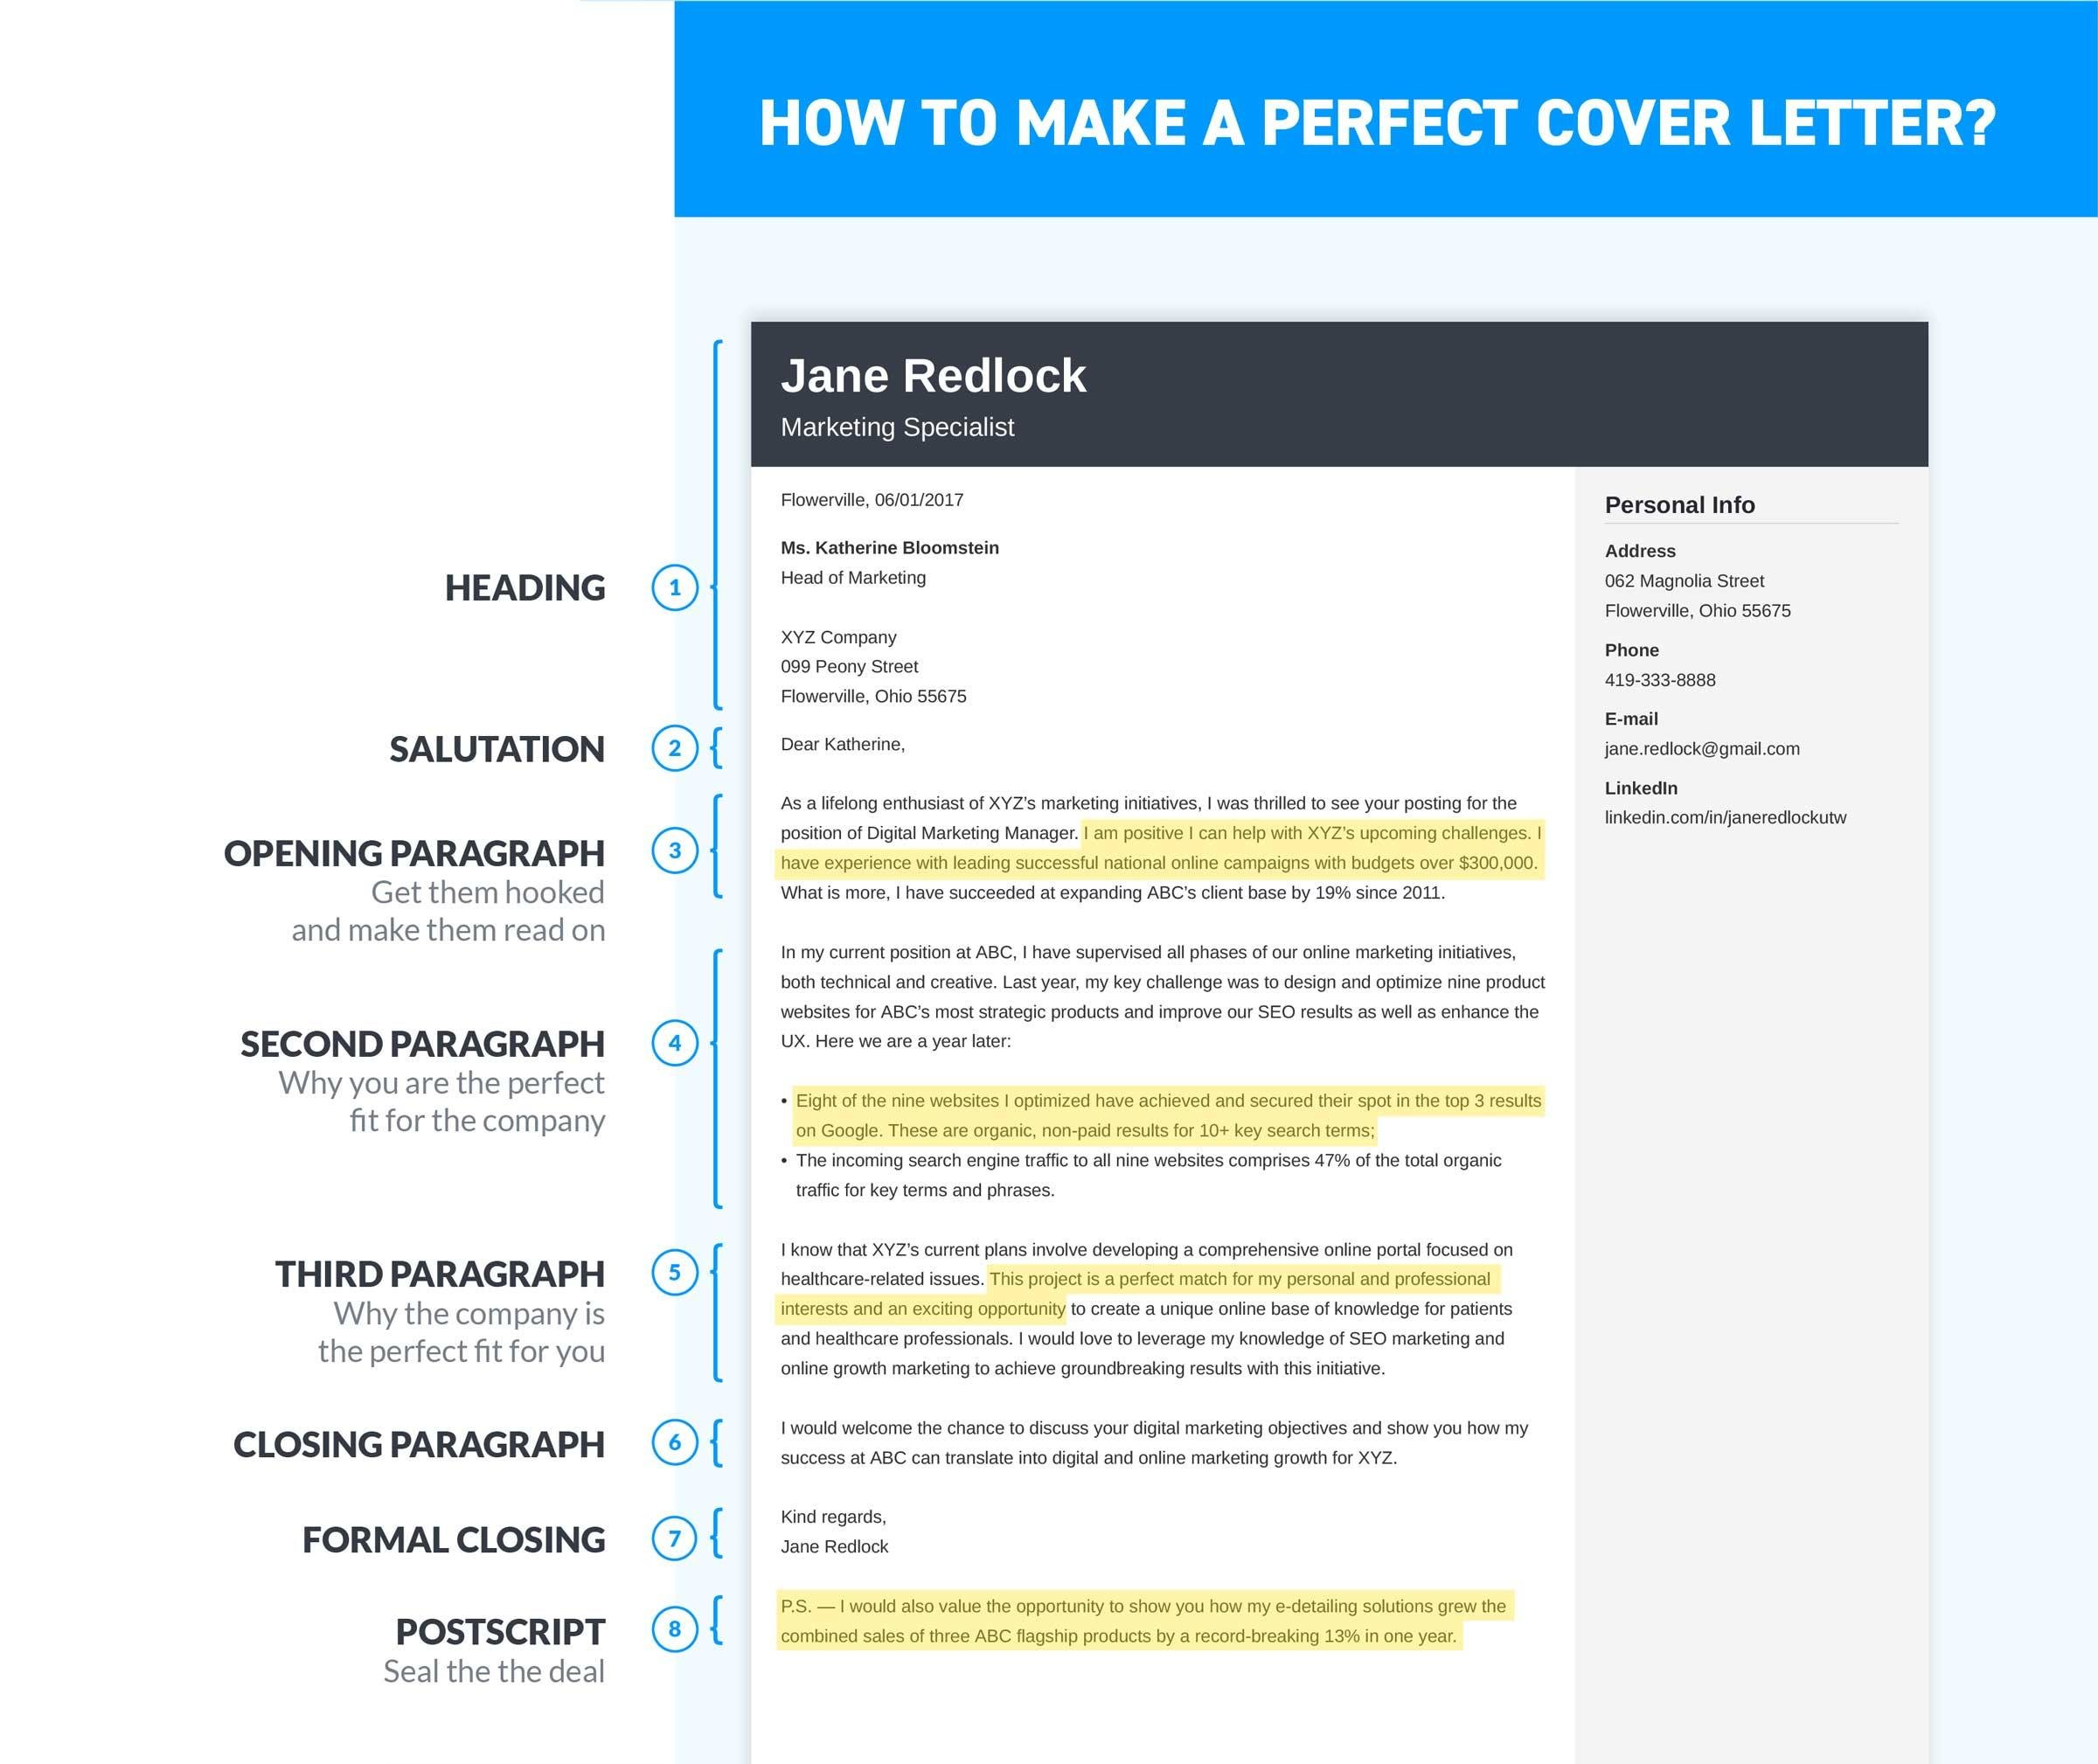 https://cdn-images.zety.com/pages/how_to_make_a_cover_letter_infographic.jpg